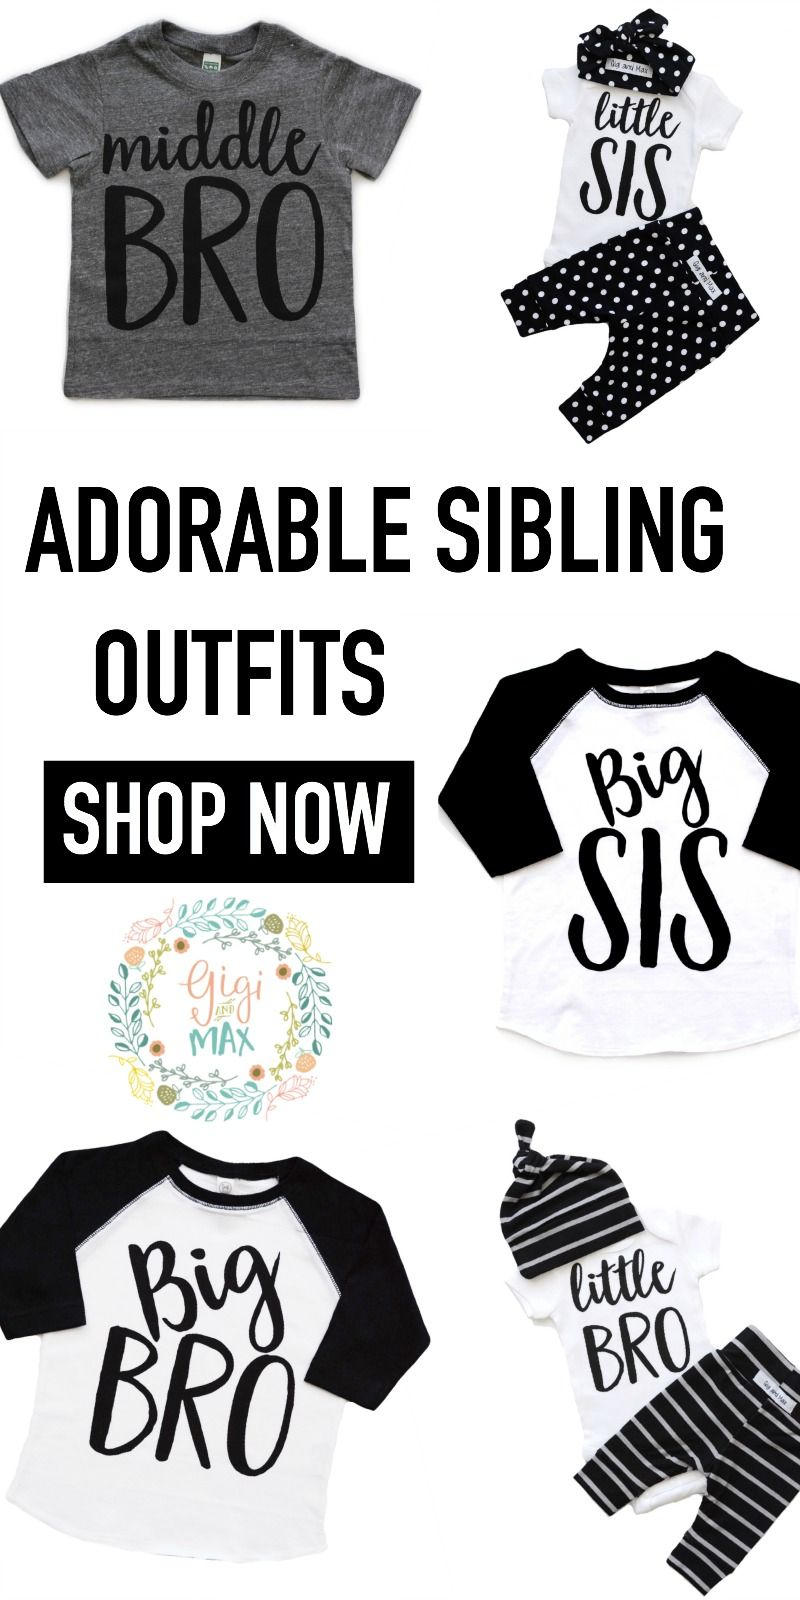 4d7044d2fcf6d Cutest sibling shirts at Gigiandmax.com! | Baby Clothes - Gigi and ...